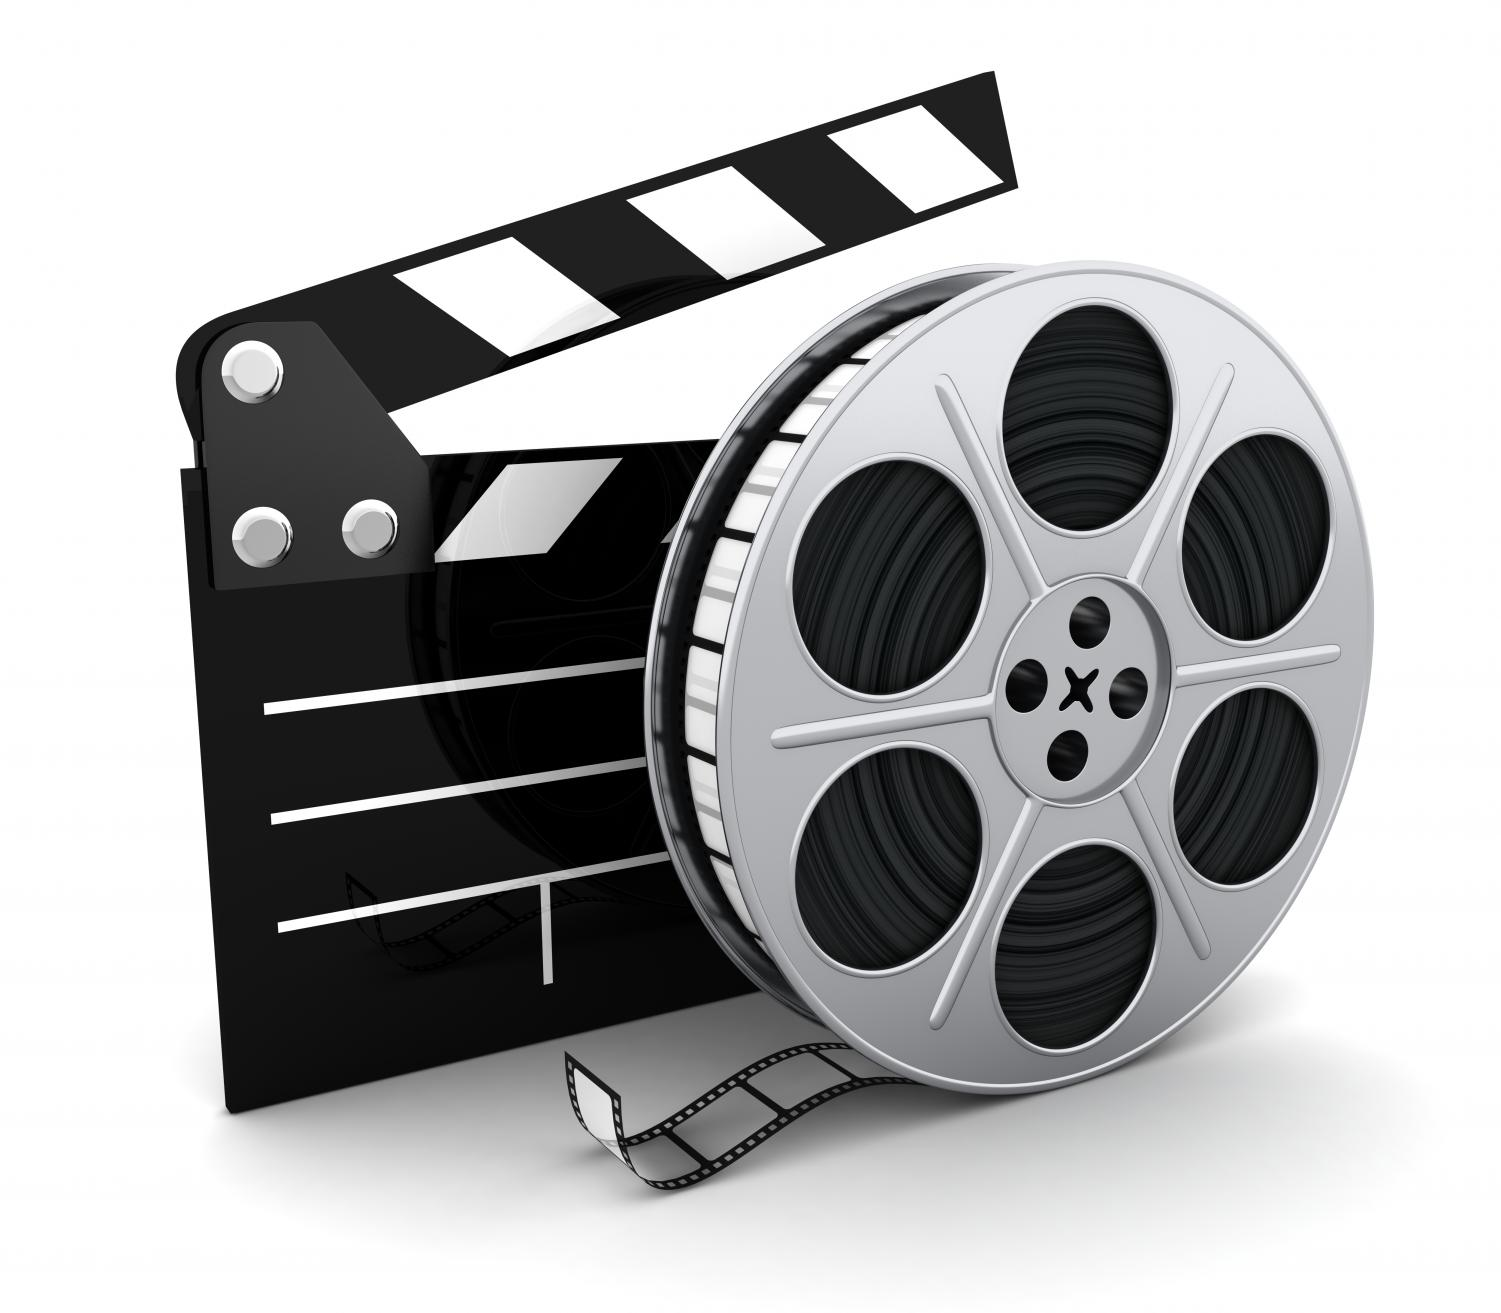 hight resolution of film reels clipart 5